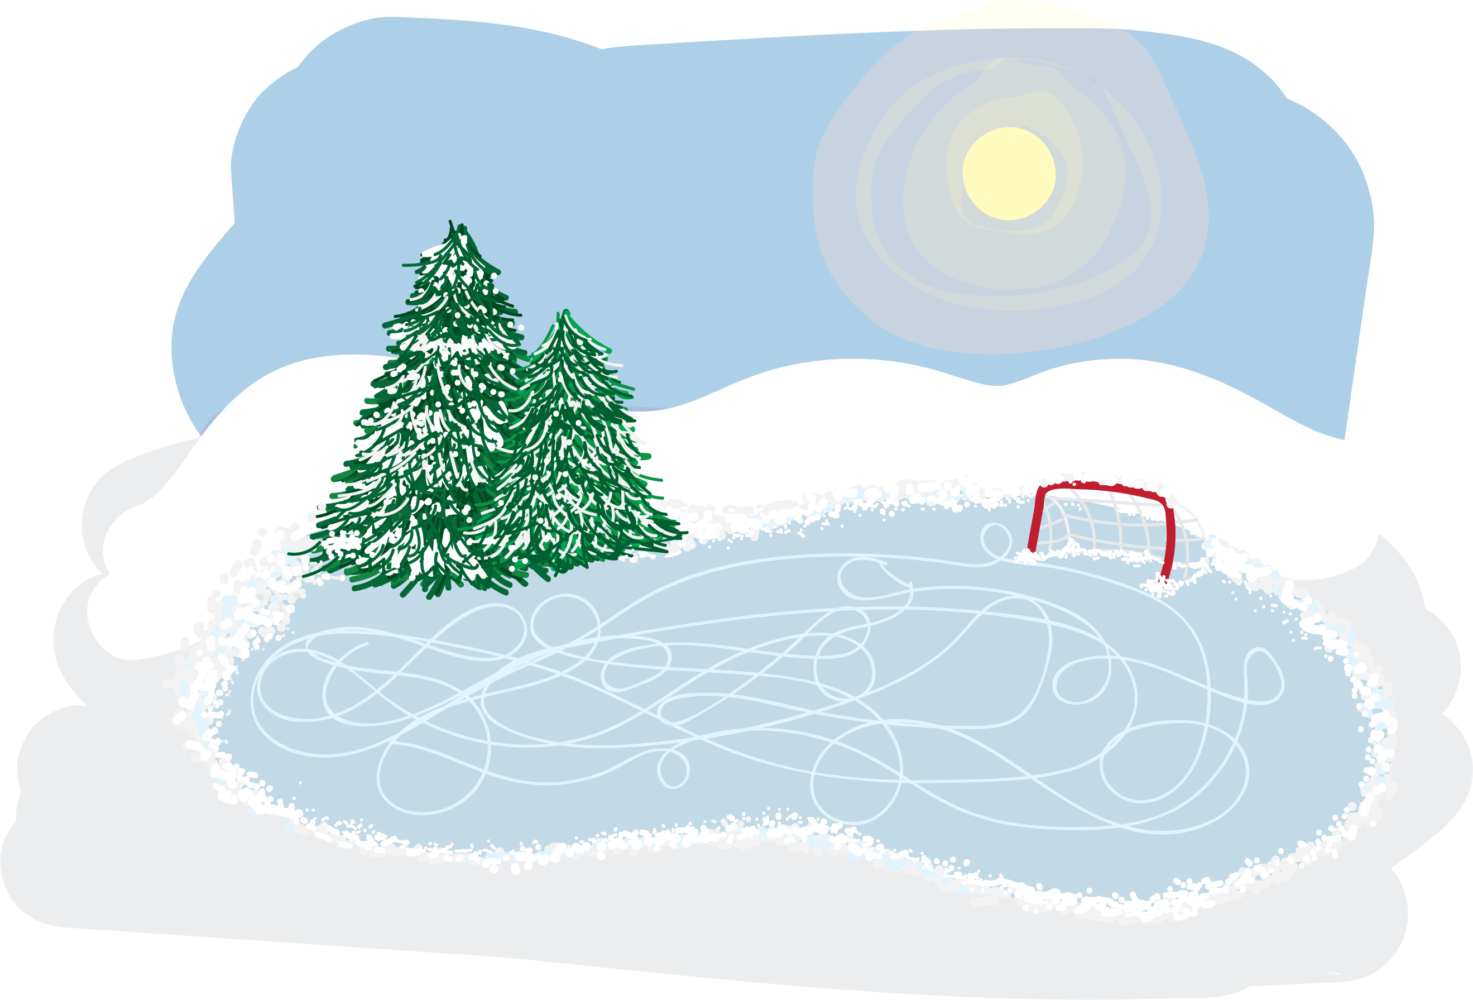 Cold weather and gray skies fail to prevent The Pitt News sports staff from enjoying their favorite winter activities. (Illustration by Elise Lavallee | Contributing Editor)